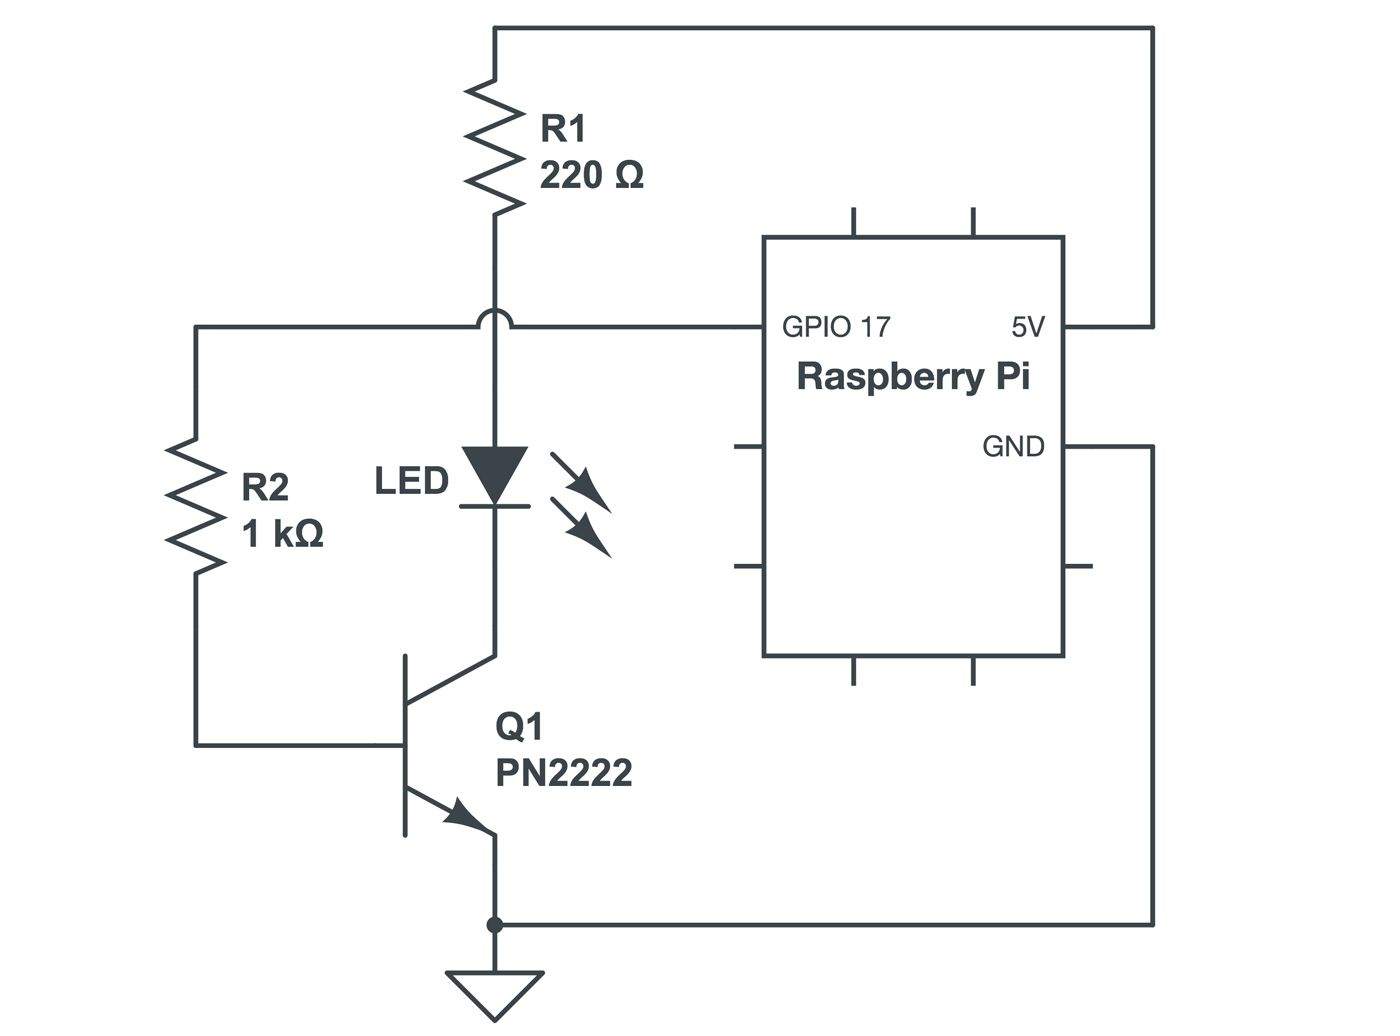 Raspberry Pi Transistor Wiring Diagram Best Secret Led Circuit Getting Started With Paulstamatiou Com Connection